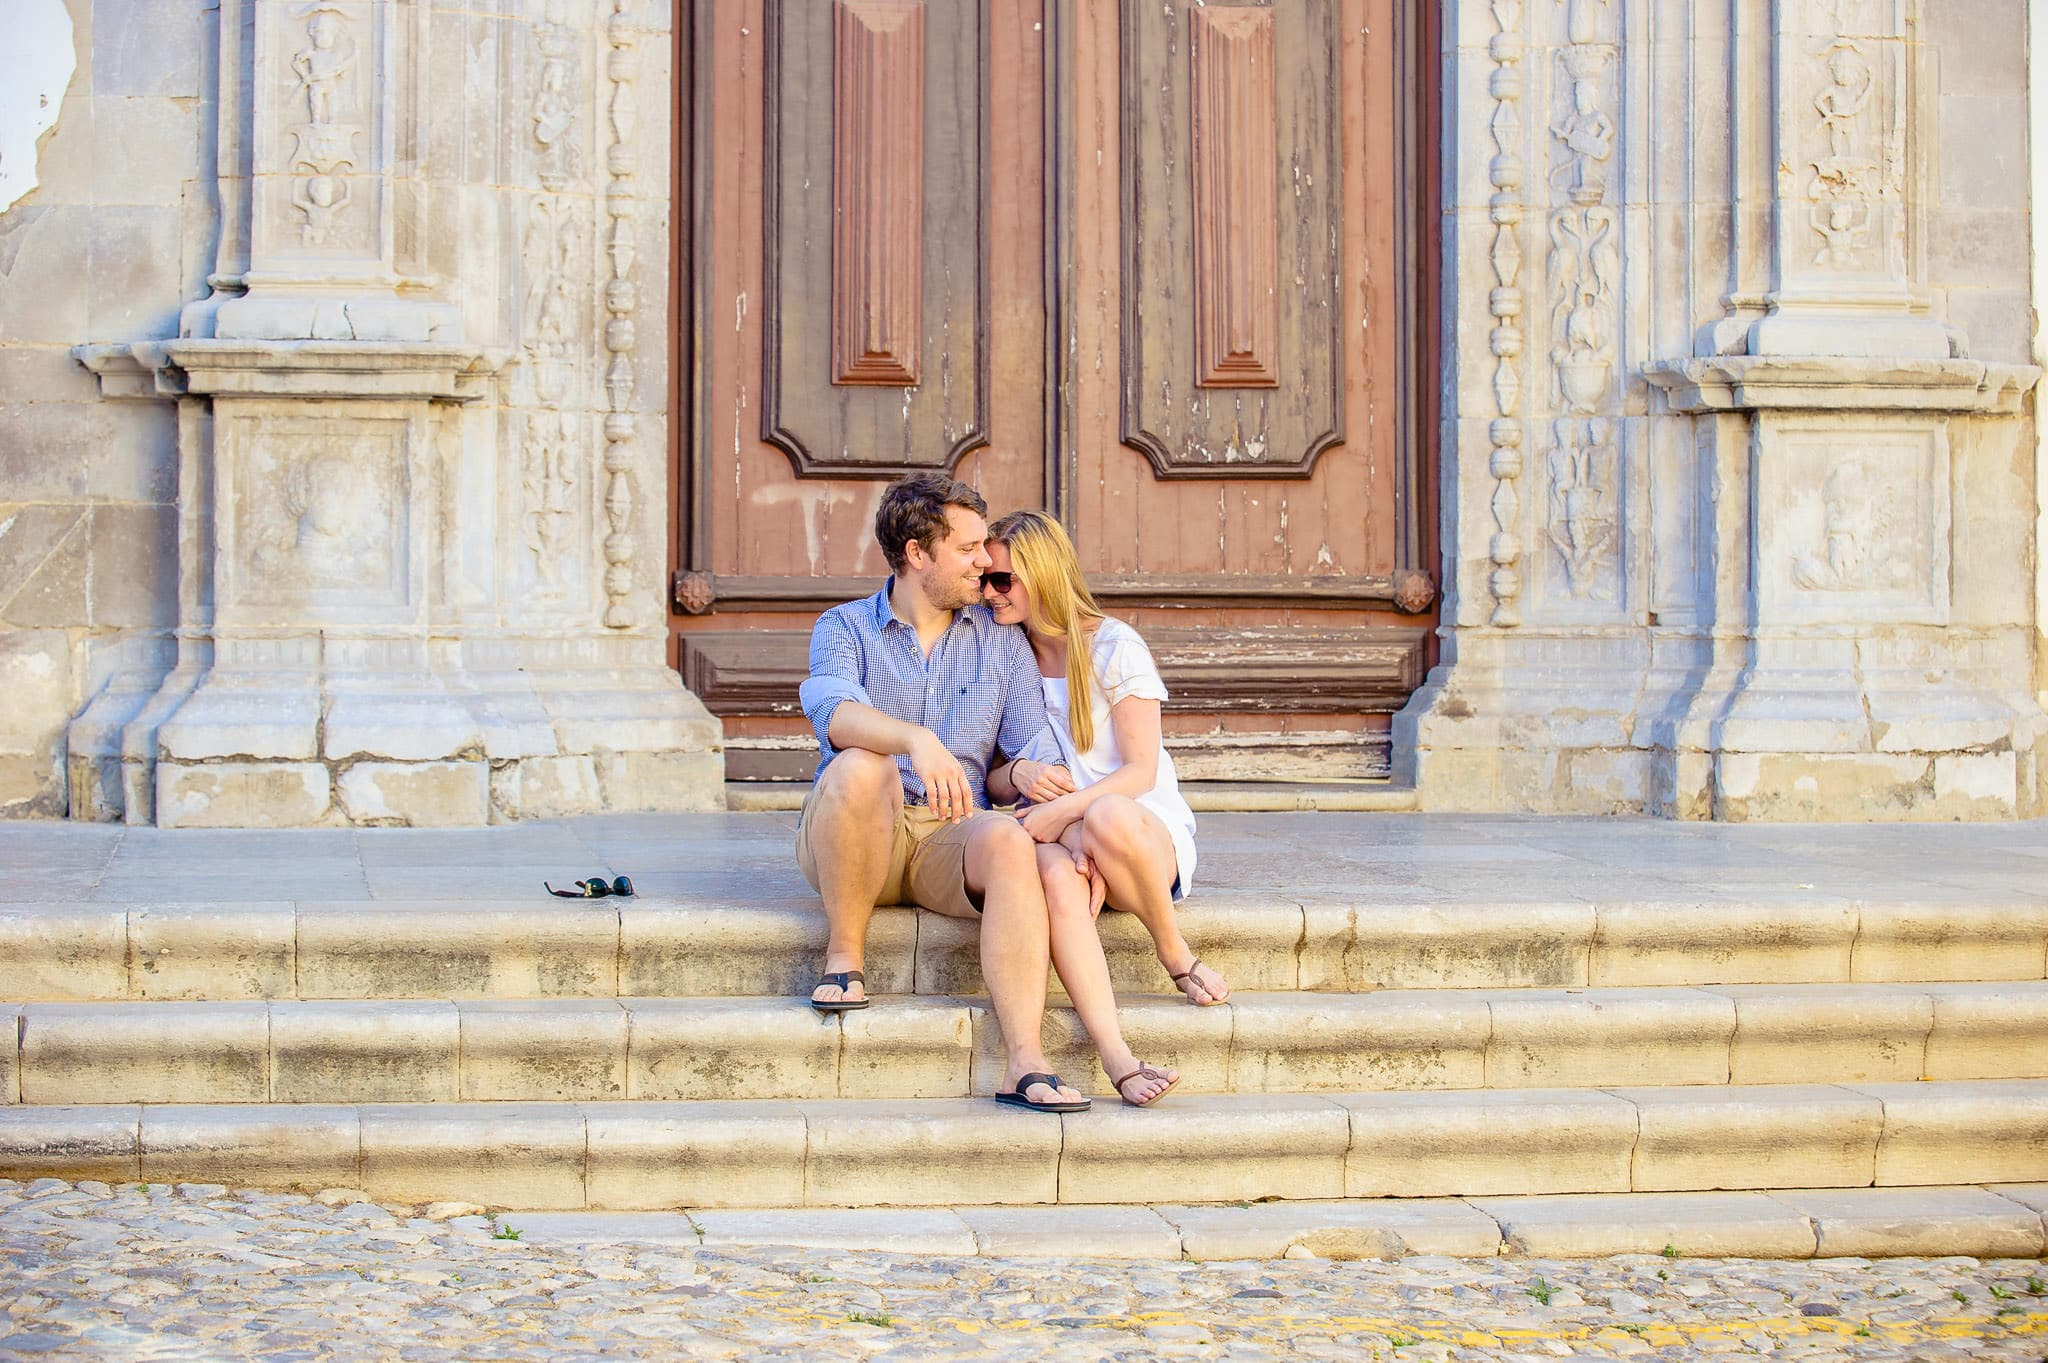 Engagement-Shooting-Paarfotos-Portugal